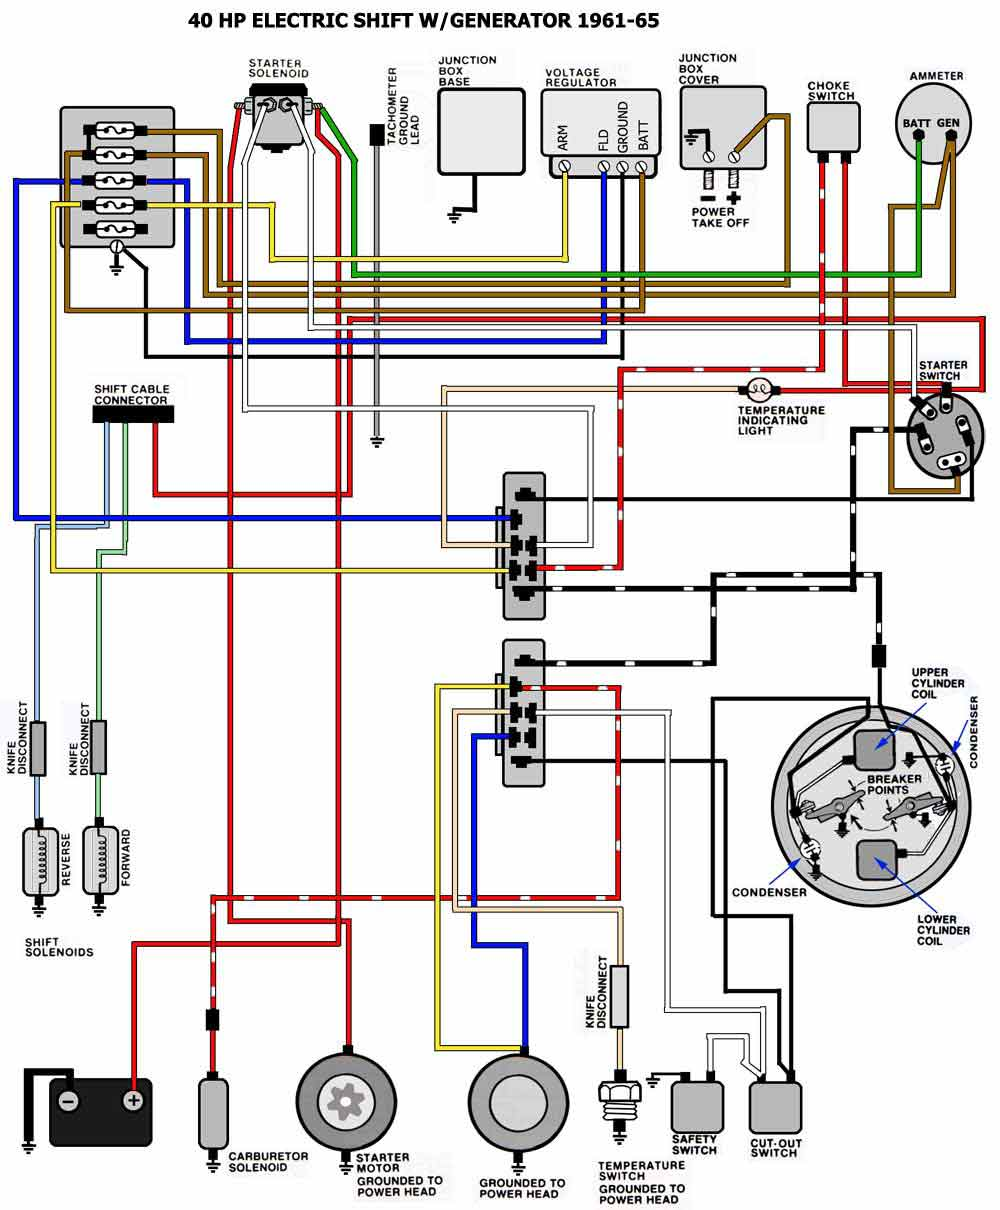 hight resolution of 25 hp evinrude wiring diagram wiring diagram for you 25 hp johnson wiring diagram 1978 johnson 25 outboard wiring diagram